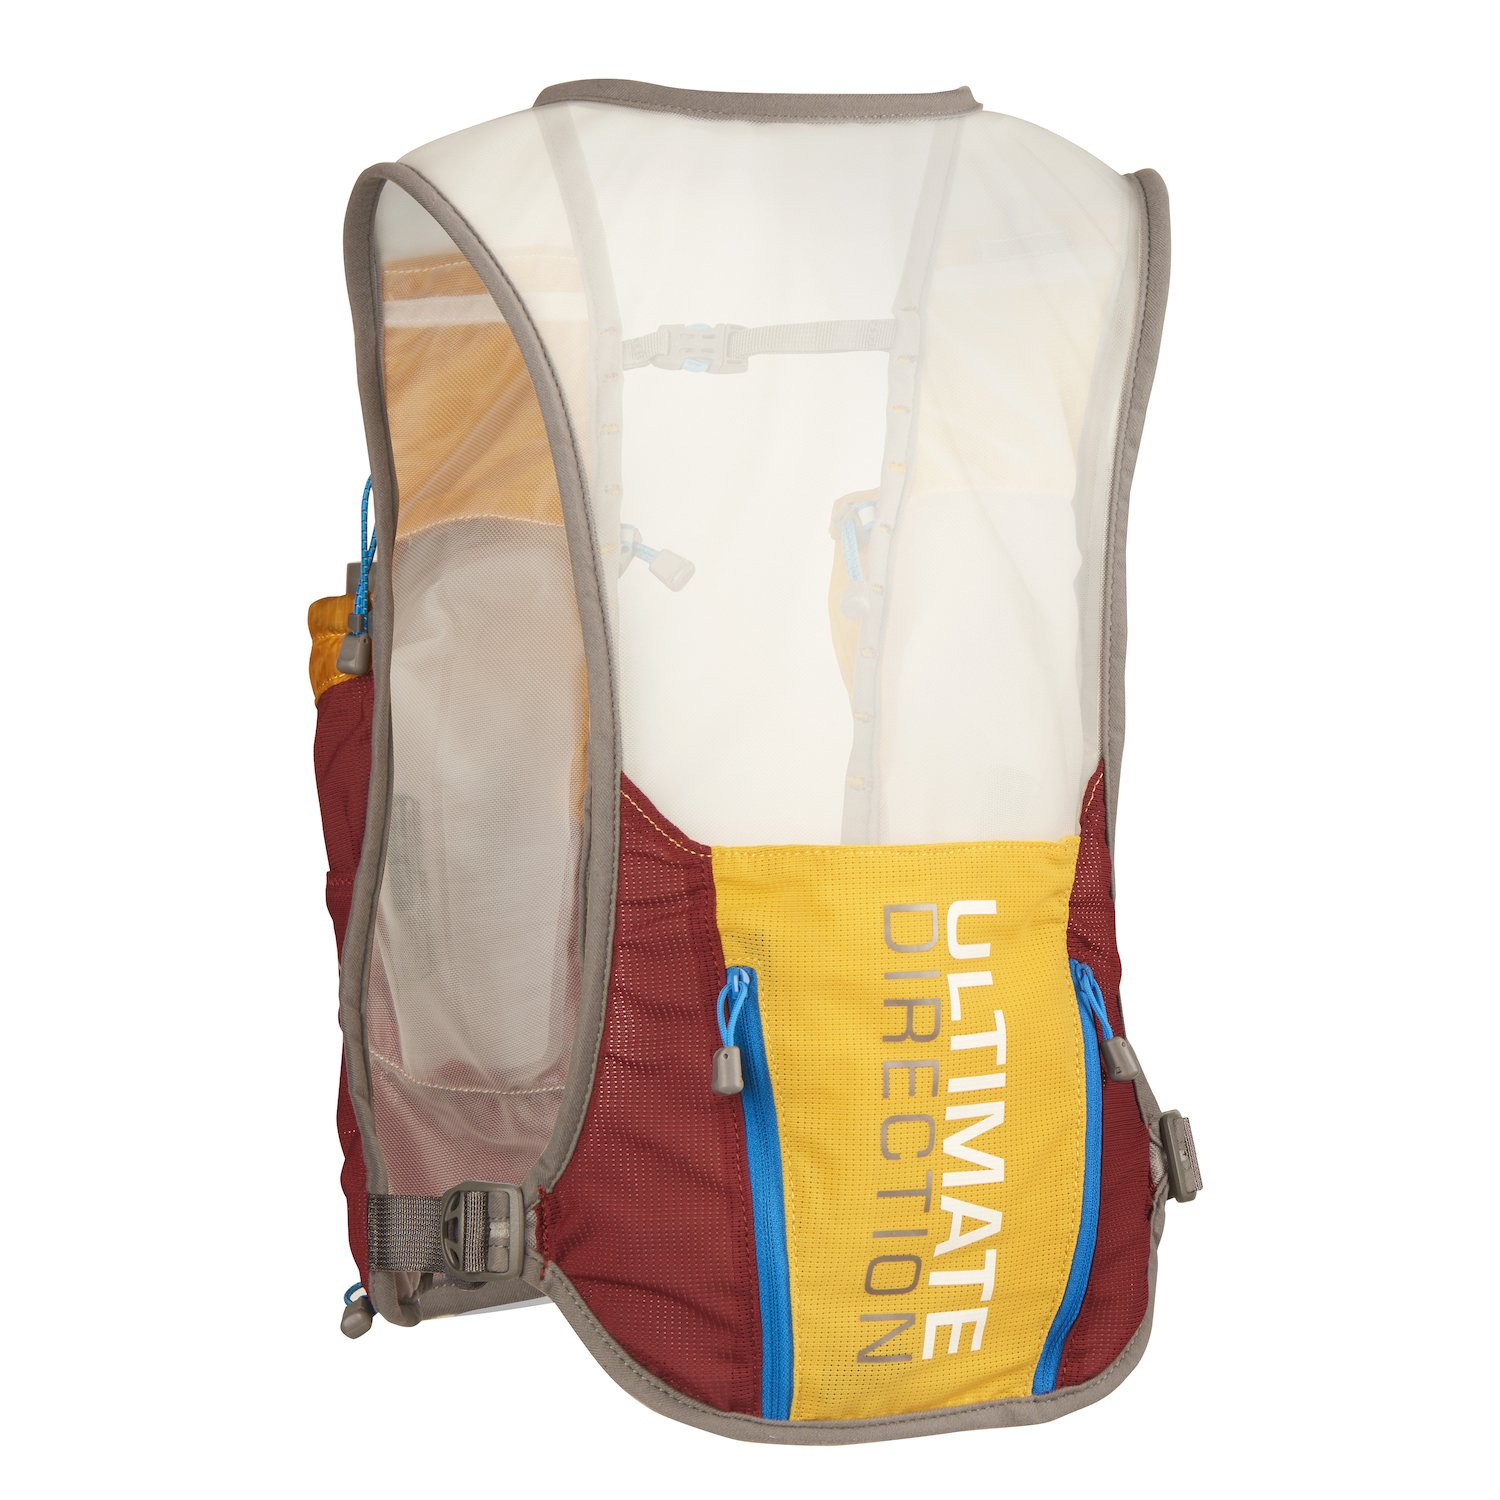 Ultimate Direction to Race 3.0 Hydration Backpack, Canyon, MD